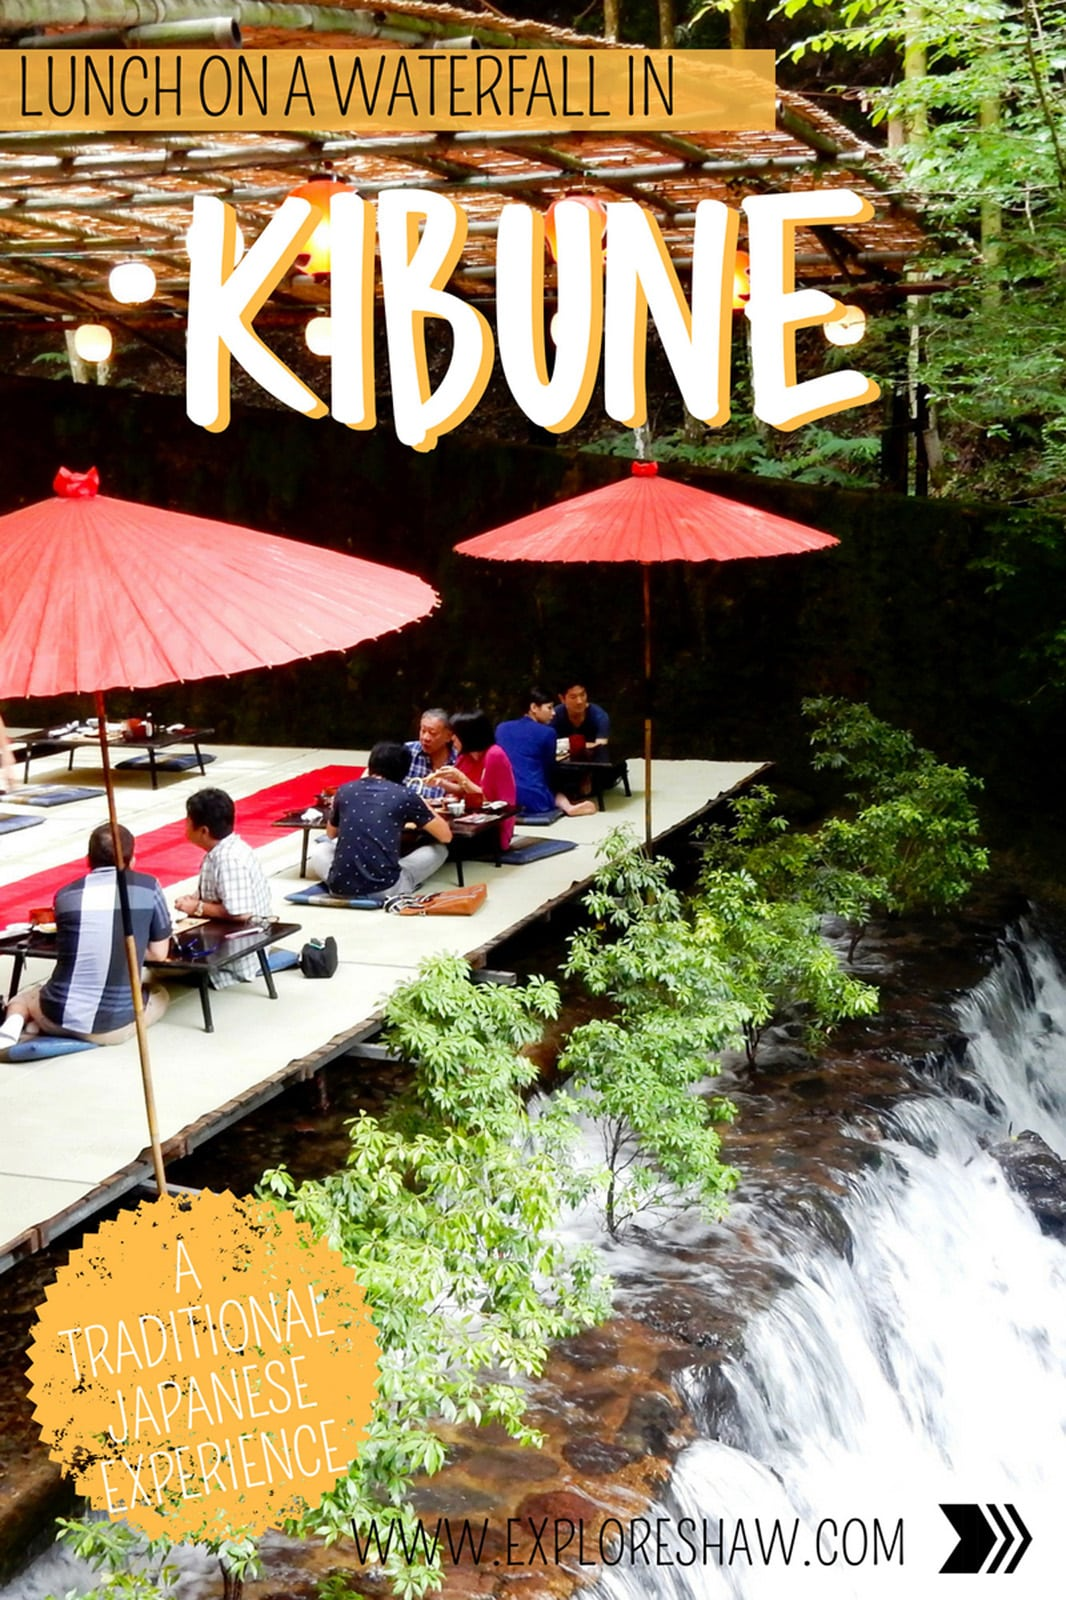 For a completely unique experience in the forest of Kyoto in Japan, how about a traditional lunch on a waterfall in Kibune! #Japan #Kibune